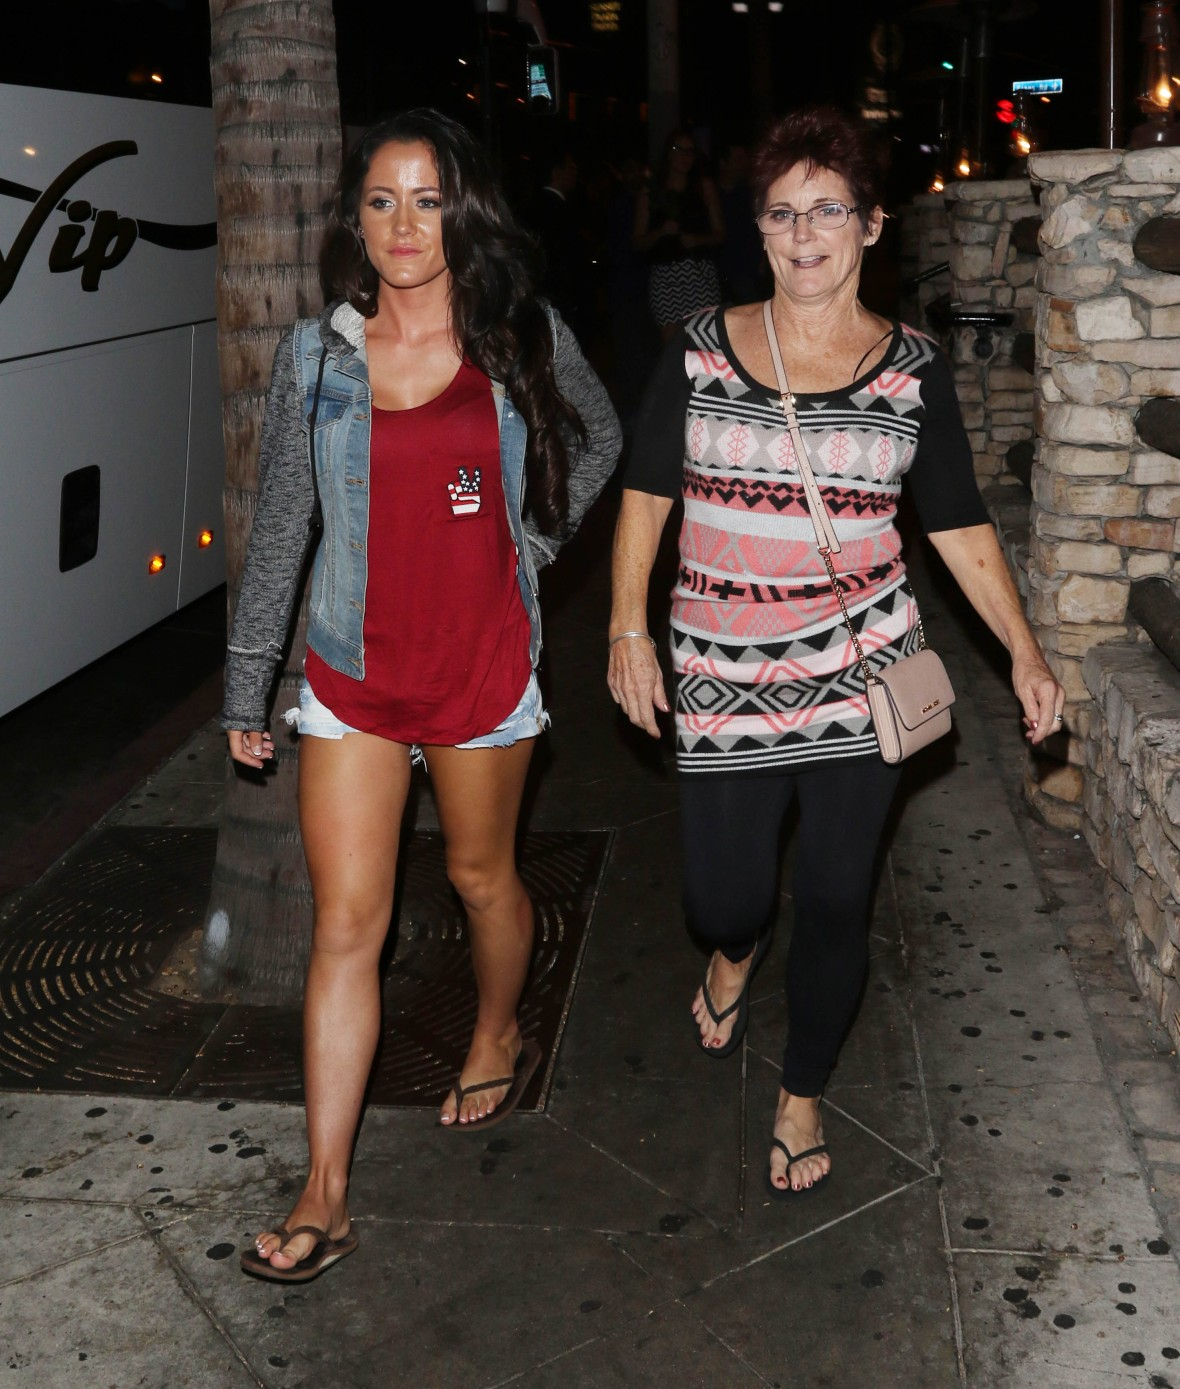 jenelle evans and babs